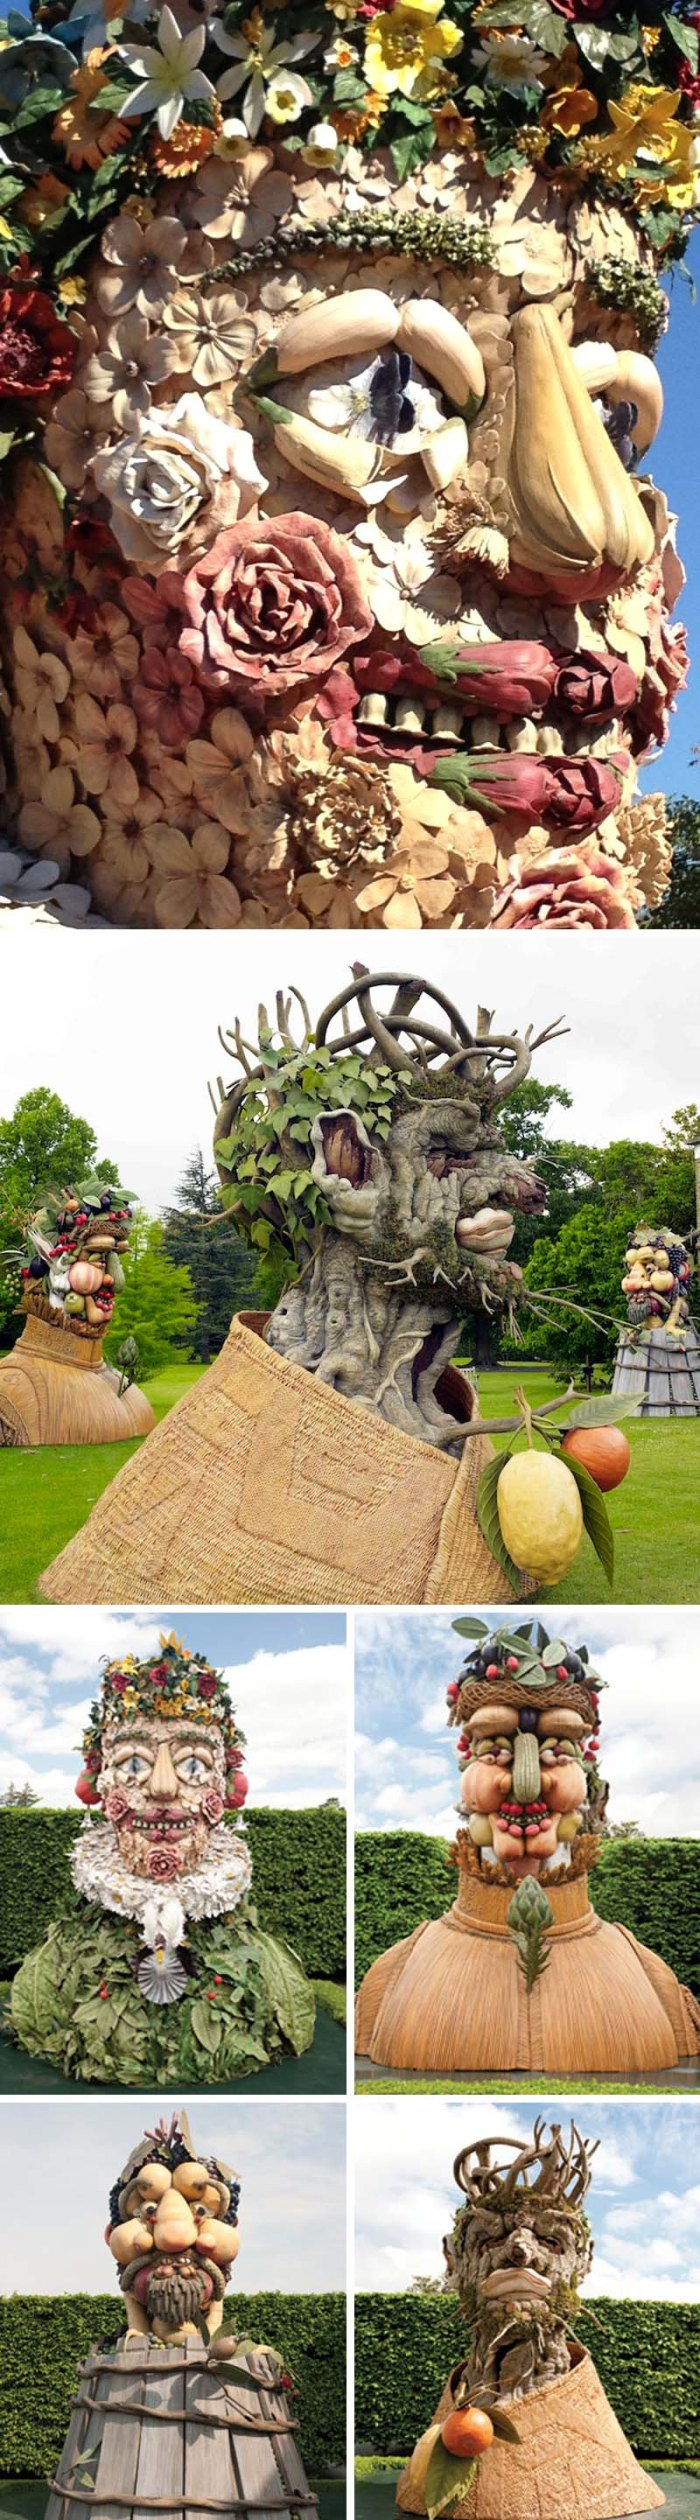 Philip Haas, Four Seasons at New York Botanical Gardens, Sculpture. arcimboldo